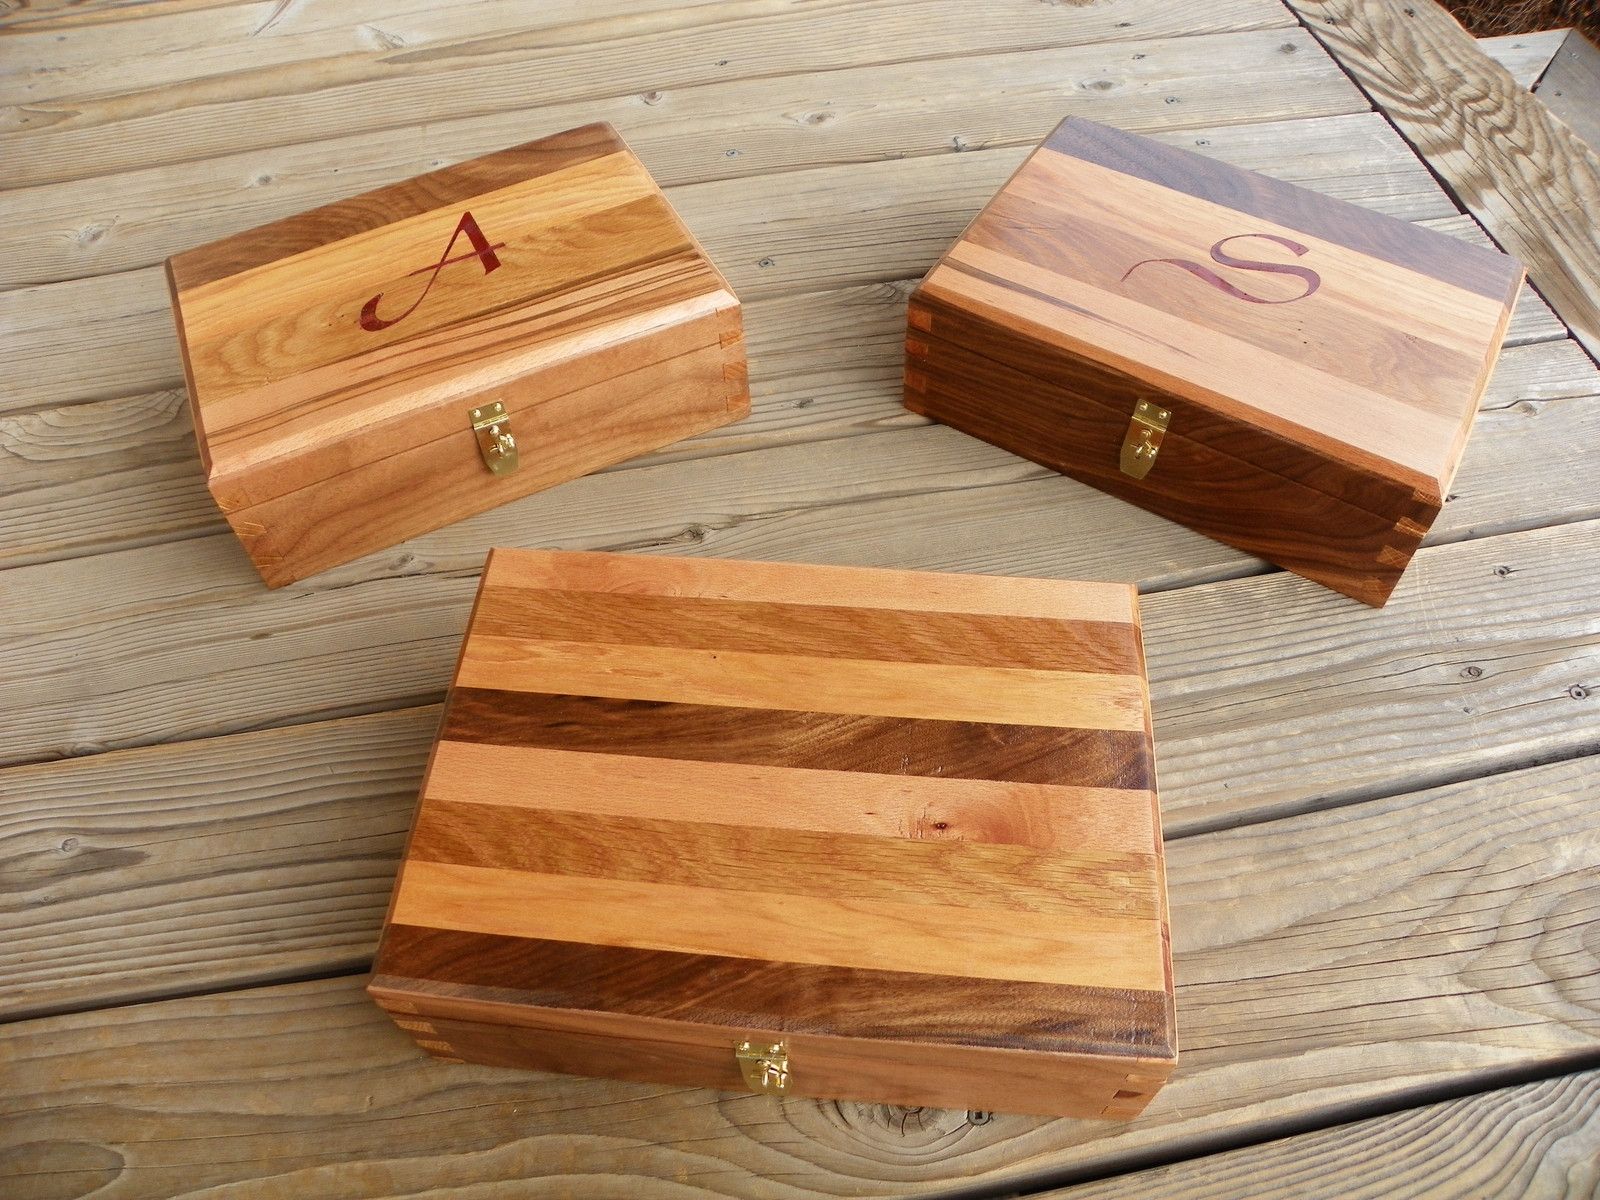 Best ideas about Wood Worker Gift Ideas . Save or Pin Woodworking Gifts Woodoperating Router – Four Now.